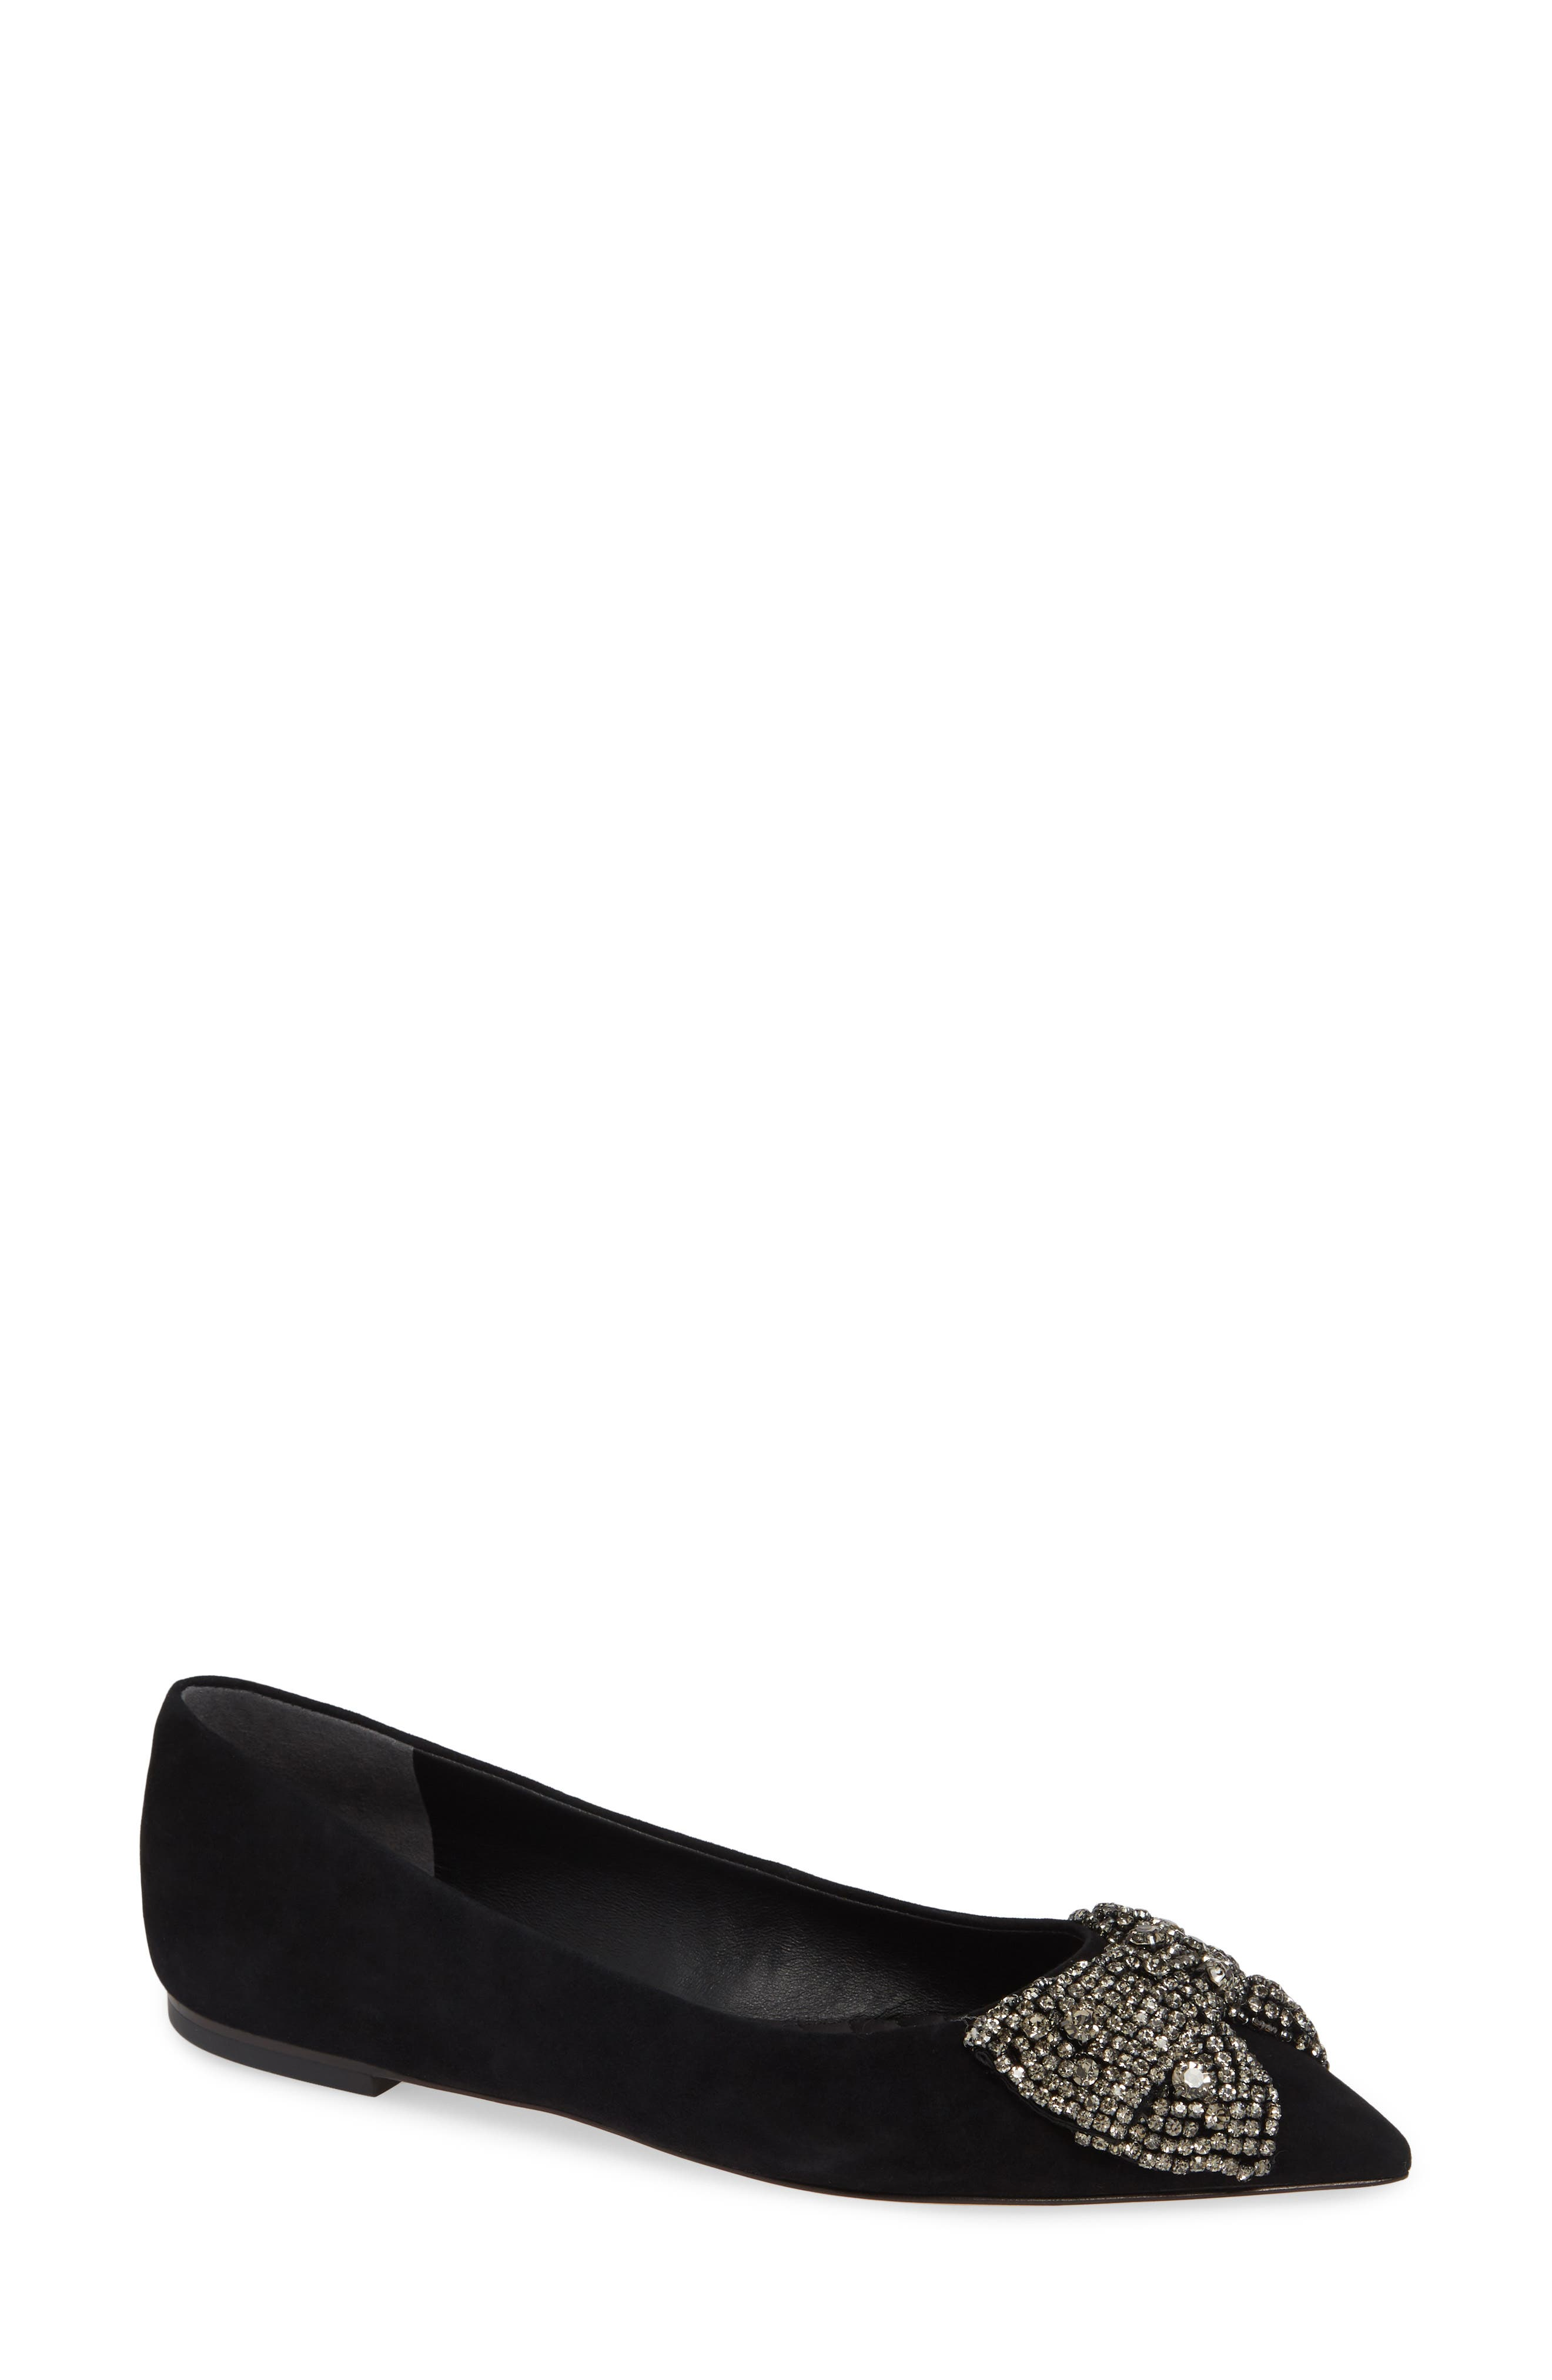 Tory Burch Esme Crystal Bow Flat, Black